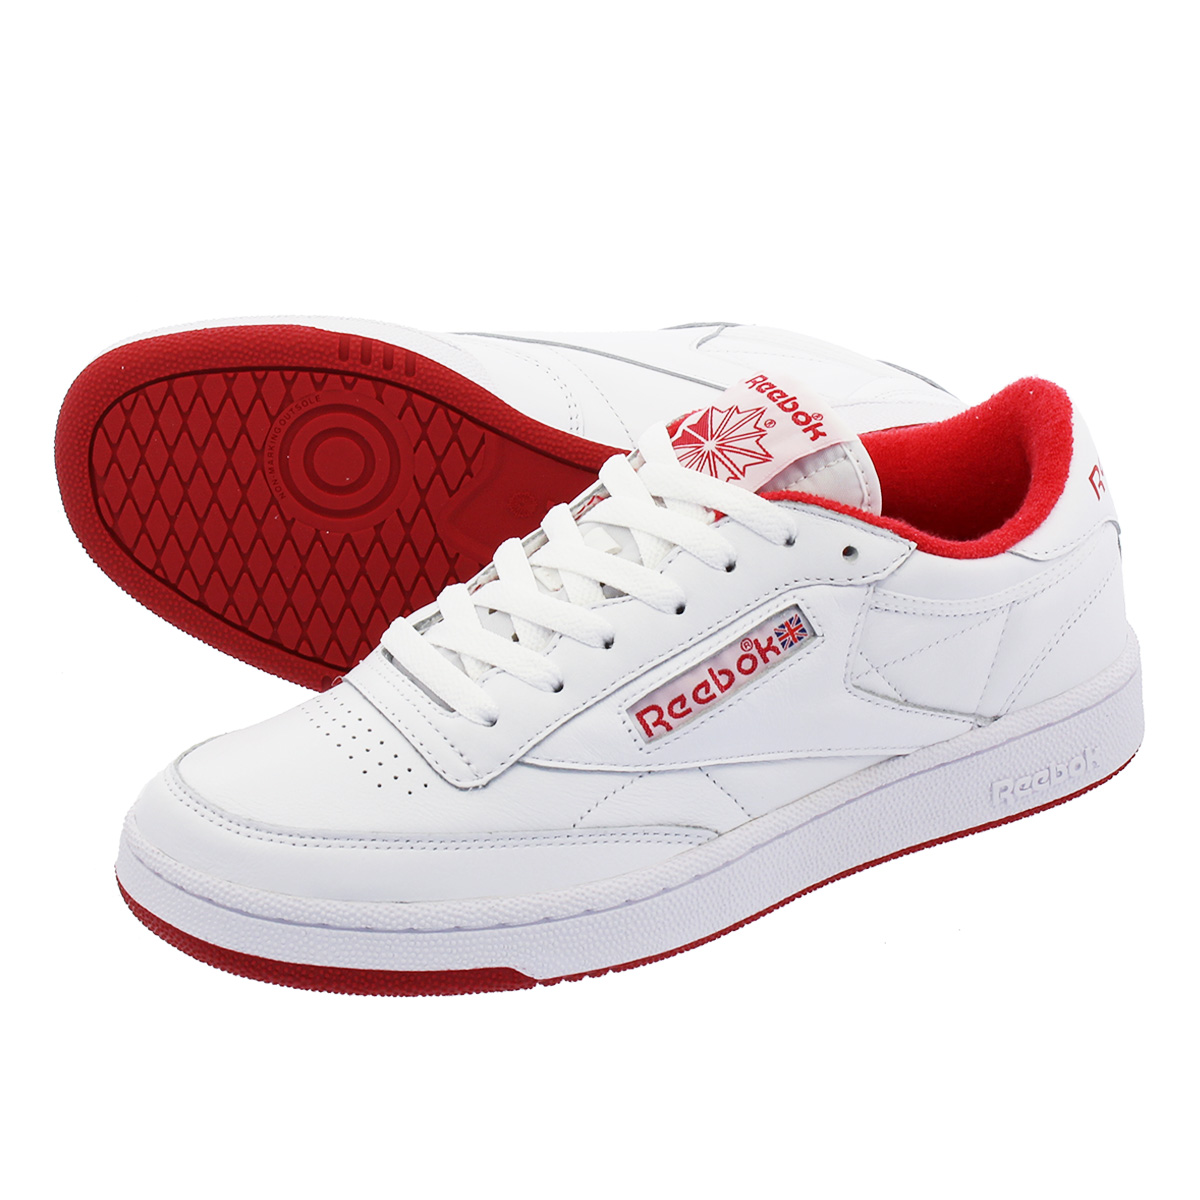 f4ec423e67103 Reebok CLUB C 85 ARCHIVE Reebok club C 85 ARCHIVE WHITE EXCELLENT RED cn3711